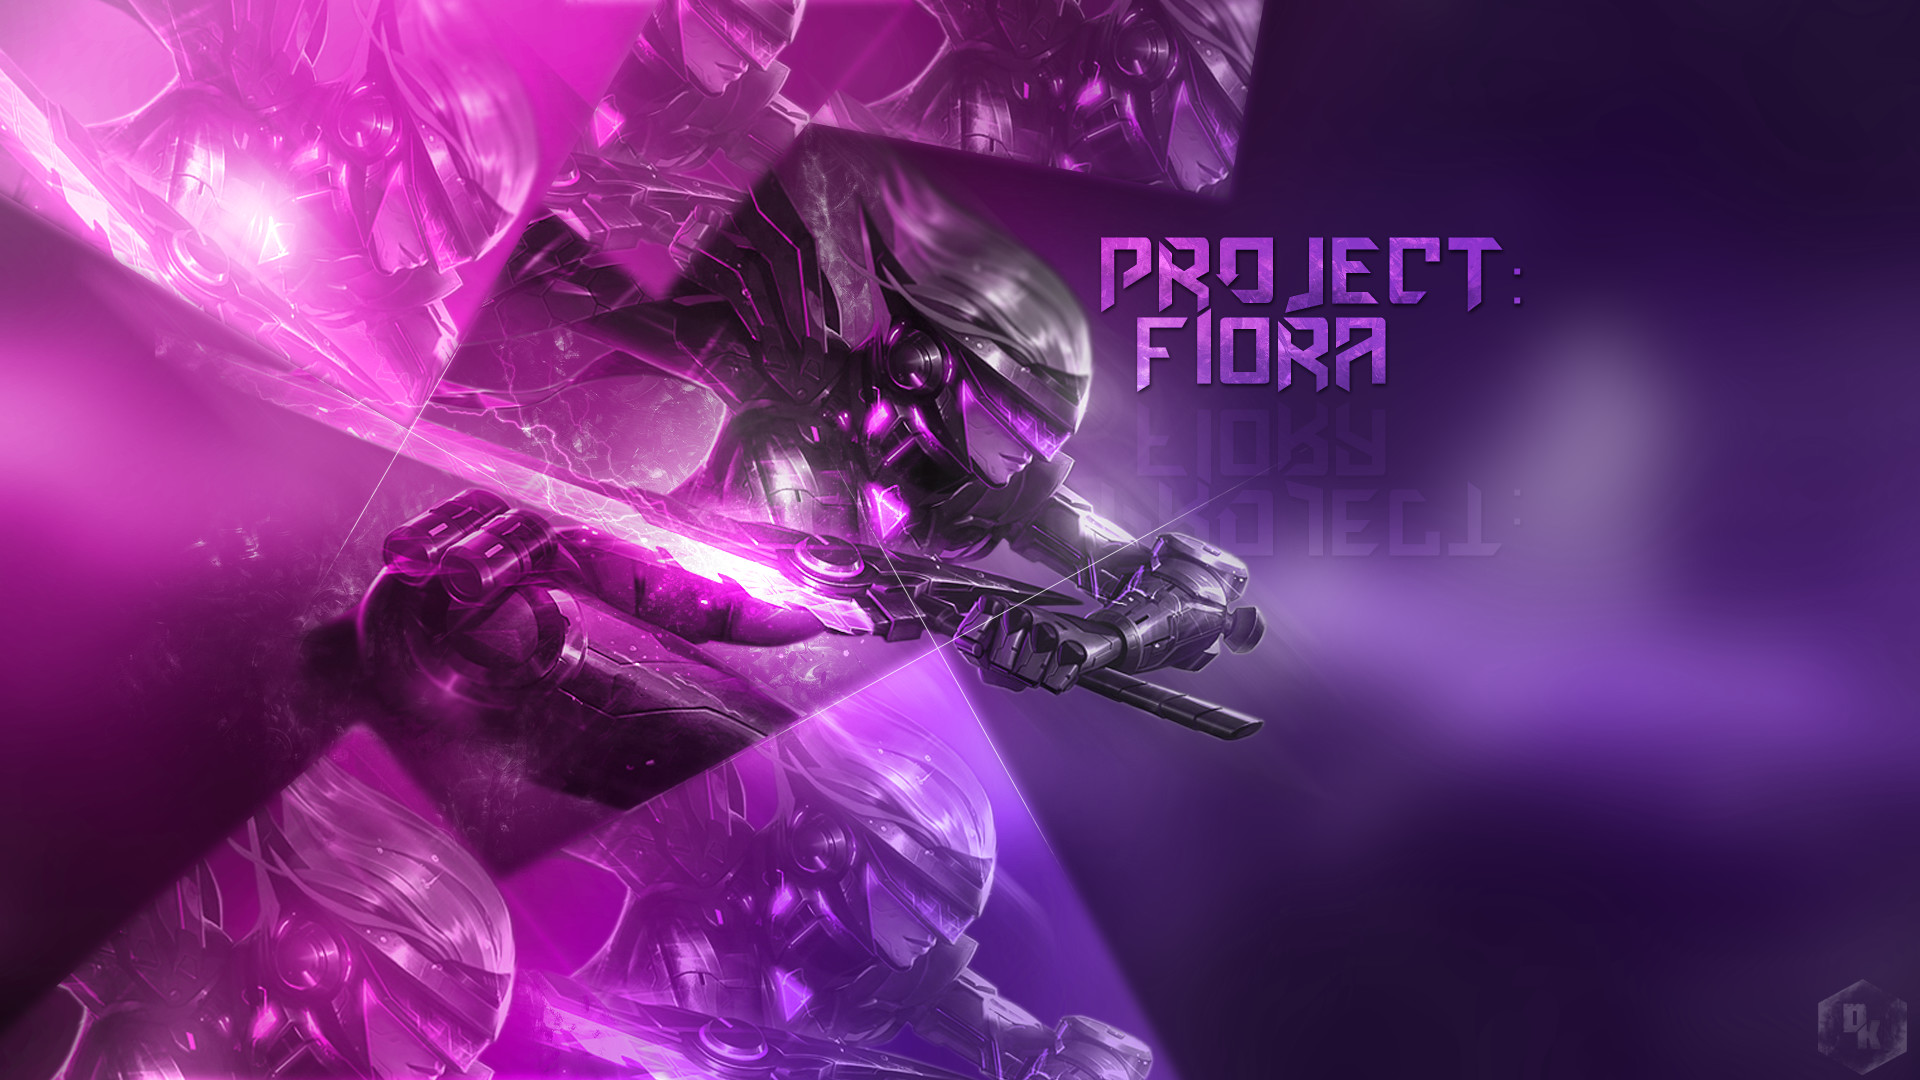 1920x1080 PROJECT: Fiora wallpaper